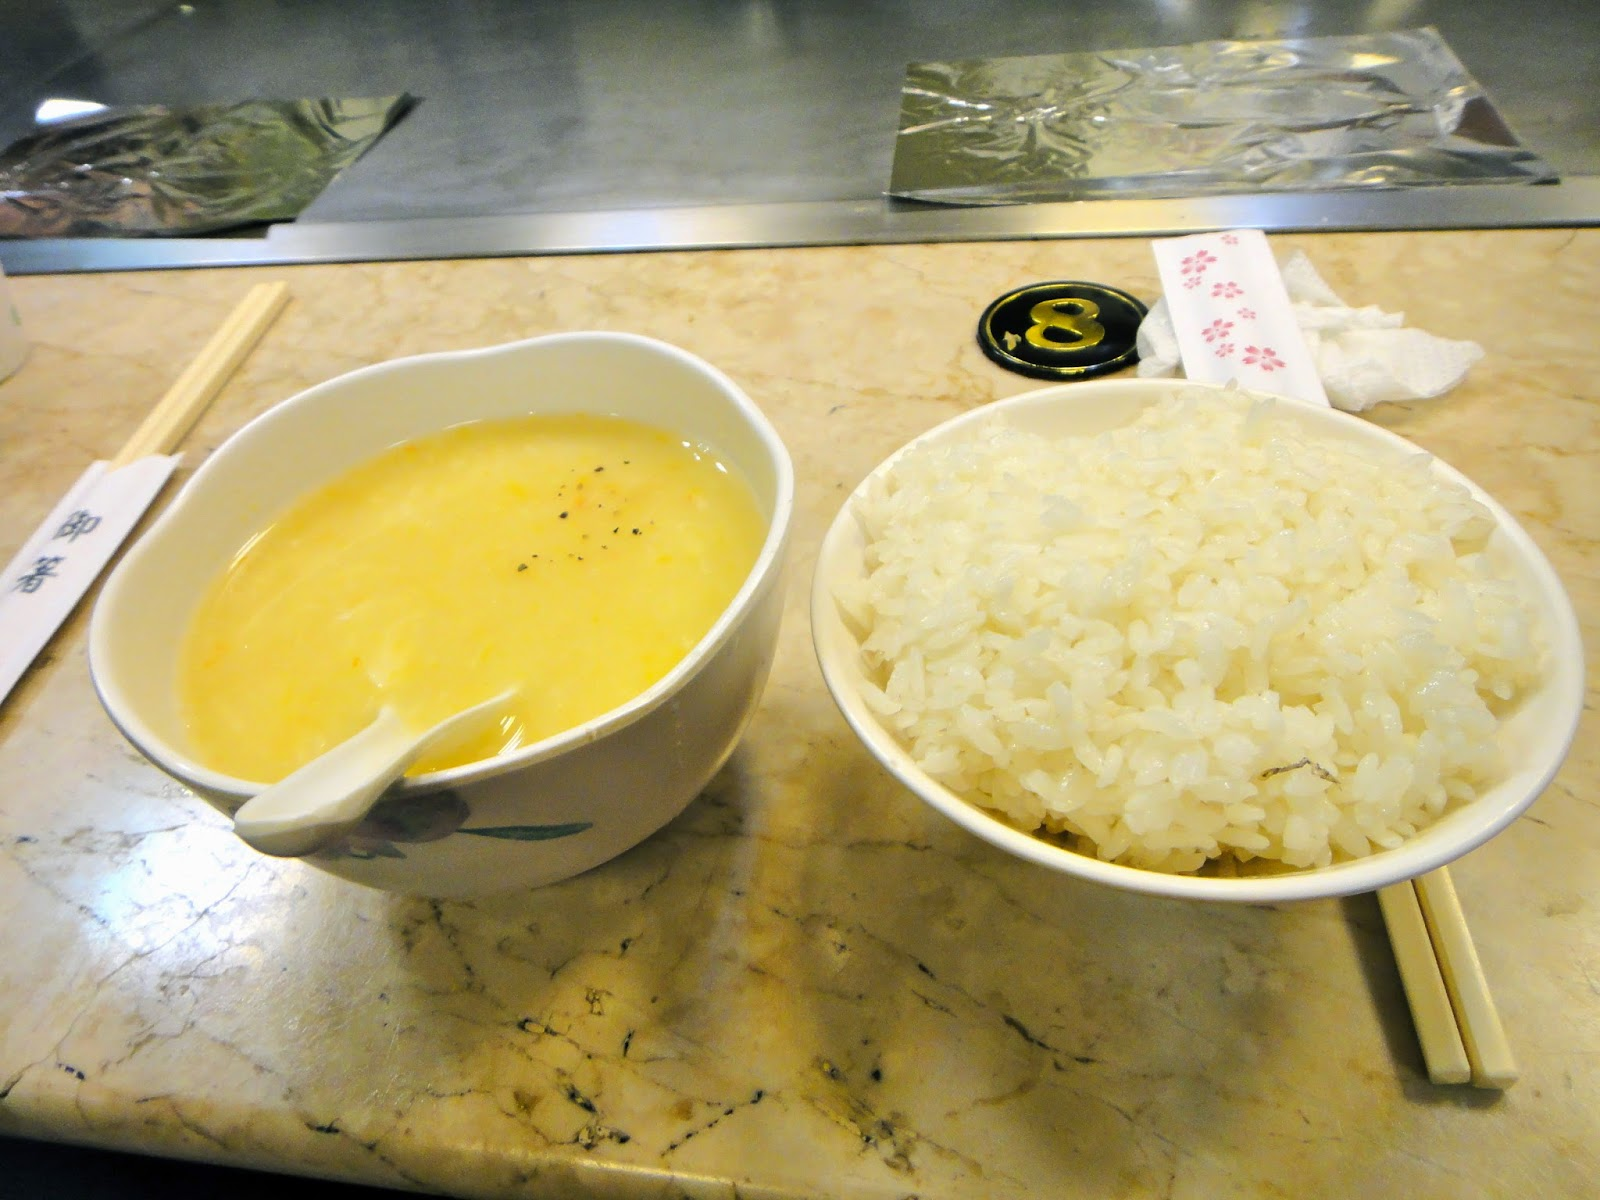 Corn soup and rice at teppanyaki stall in Taiwan